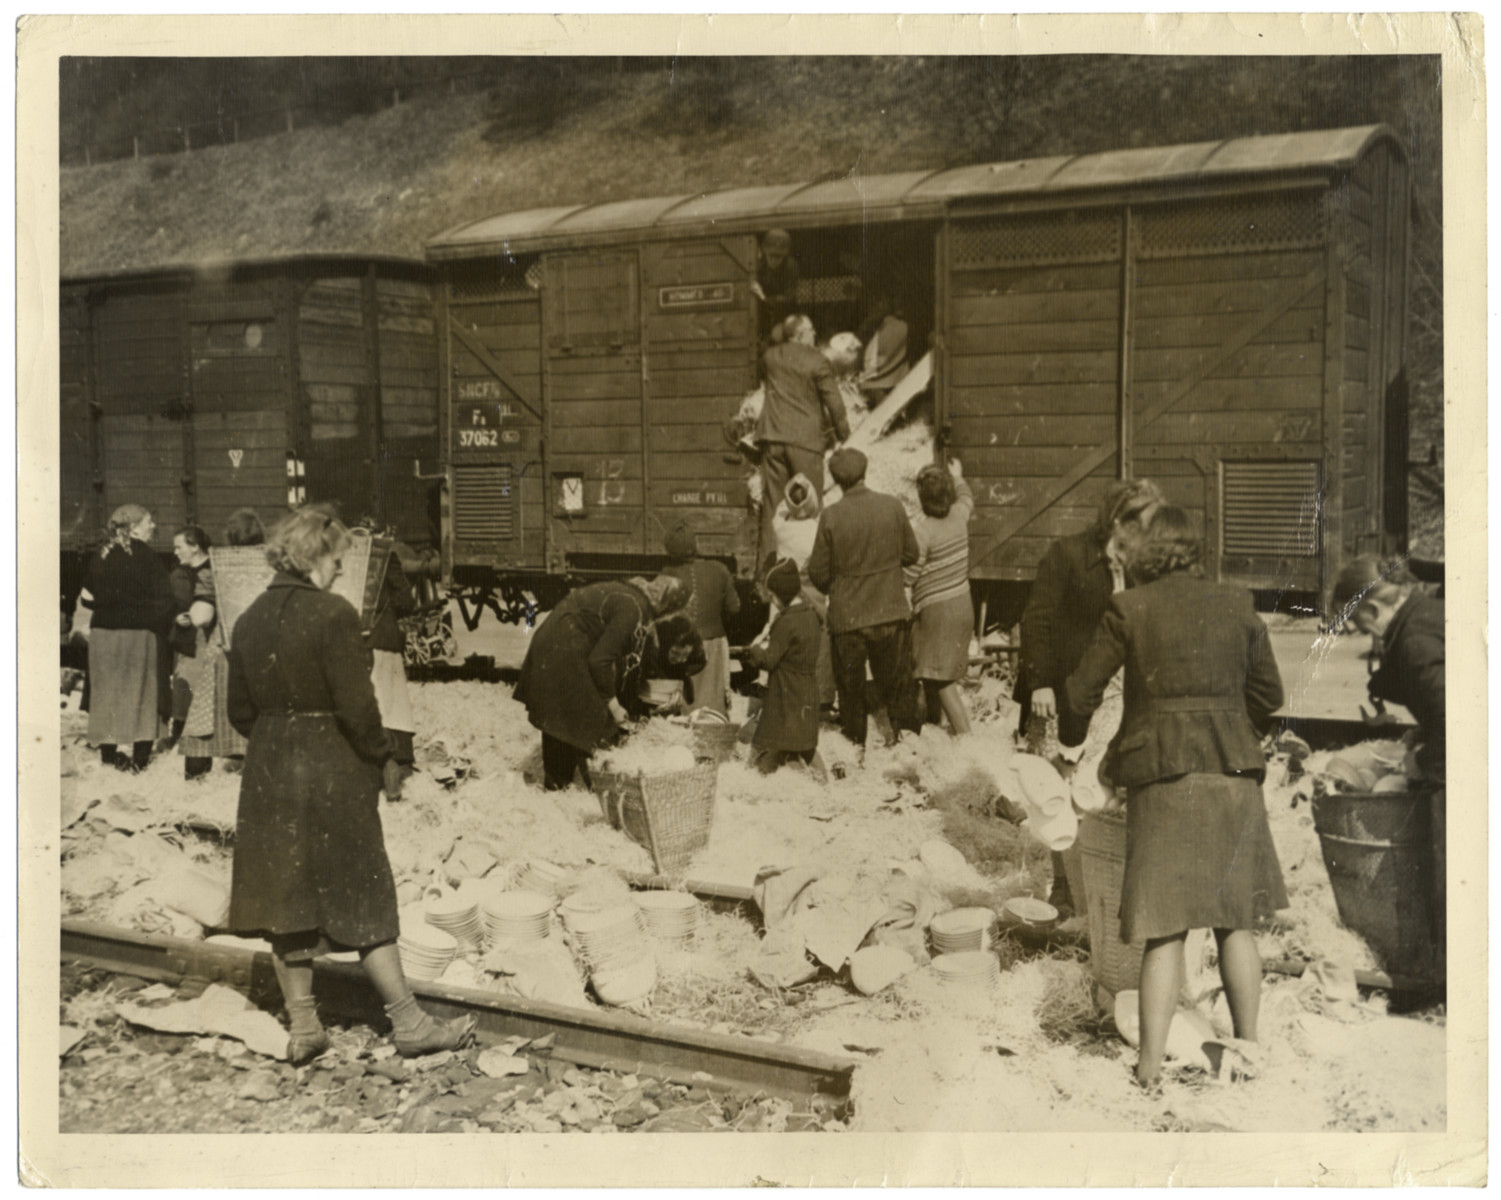 """German civilians loot a Nazi train as the war winds down.  Original caption reads: """"Civilians, mostly  women loot china from a Nazi freight car halted in railyards near Elsenoch, historic German town captured April 6, 1945, by troops of the Third U.S Army. Throughout  captured portions of the Reich, the fleeing of Gestapo members is the signal for German civilians, mostly women, to loot shops, trains, bombed houses and warehouses. U.S Signal Corps Photo ETC-HQ-45-61632"""""""